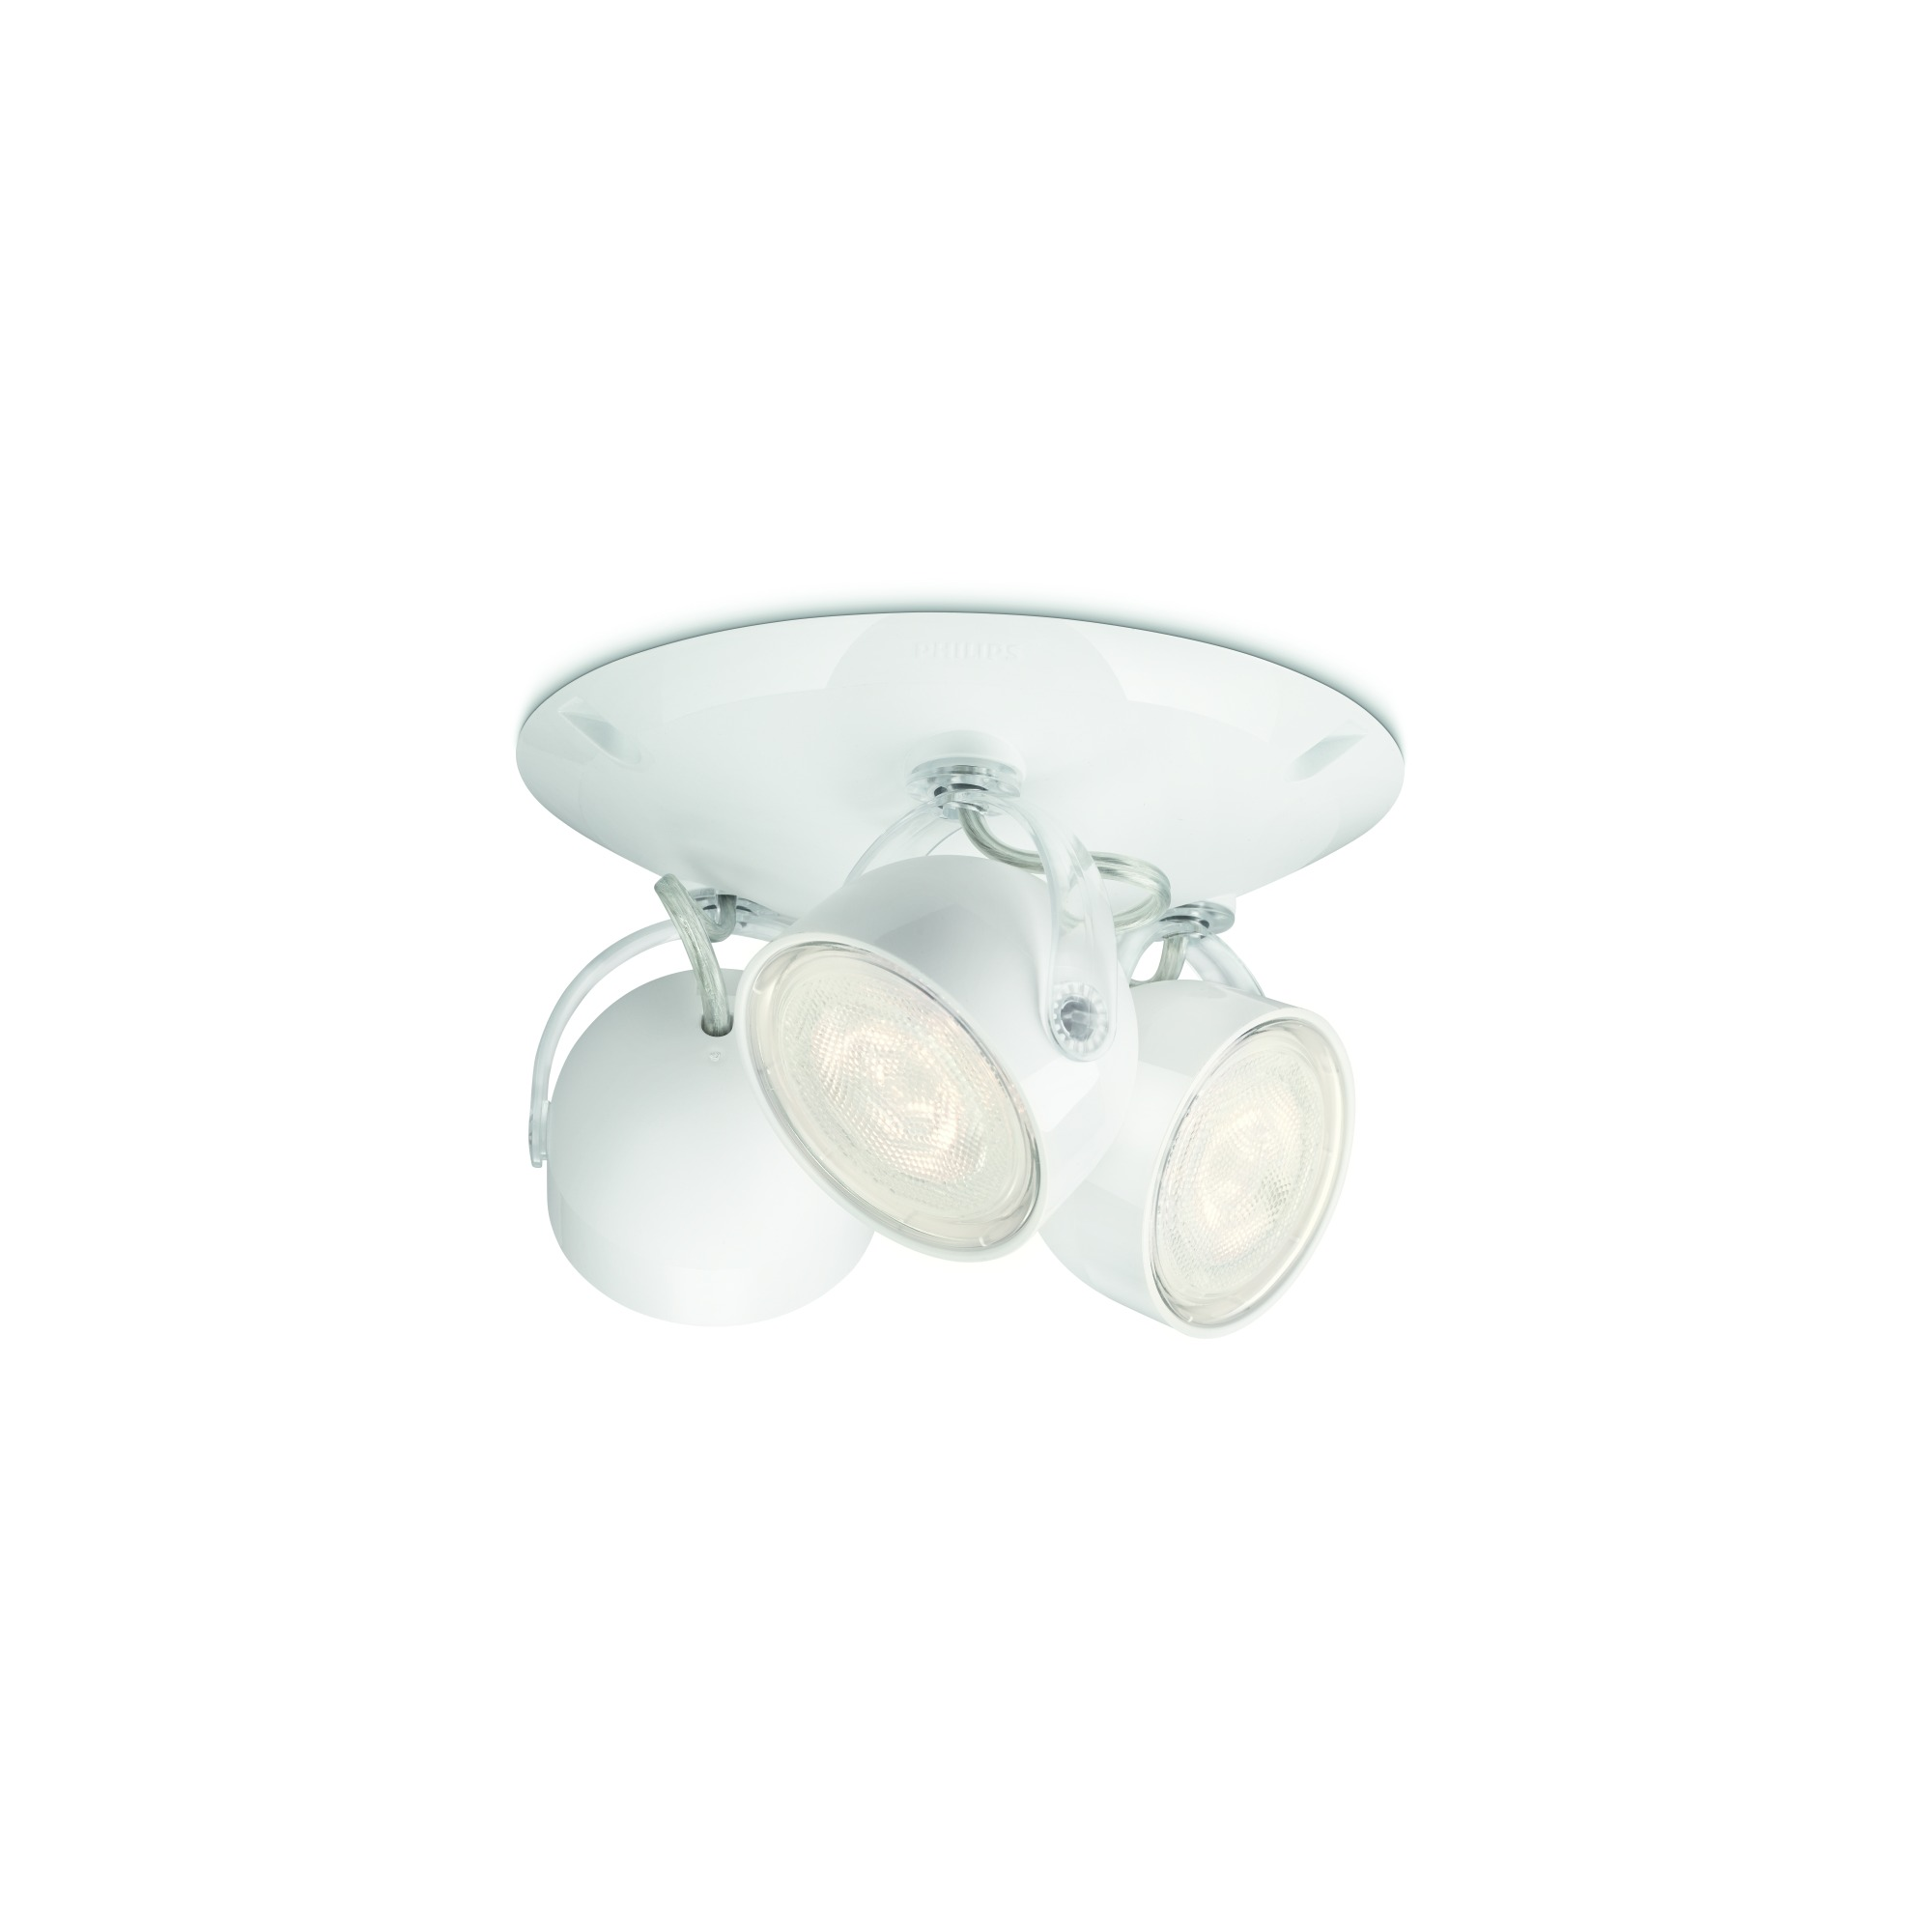 DYNA LED plafondspot MyLiving by Philips 53233-31-16